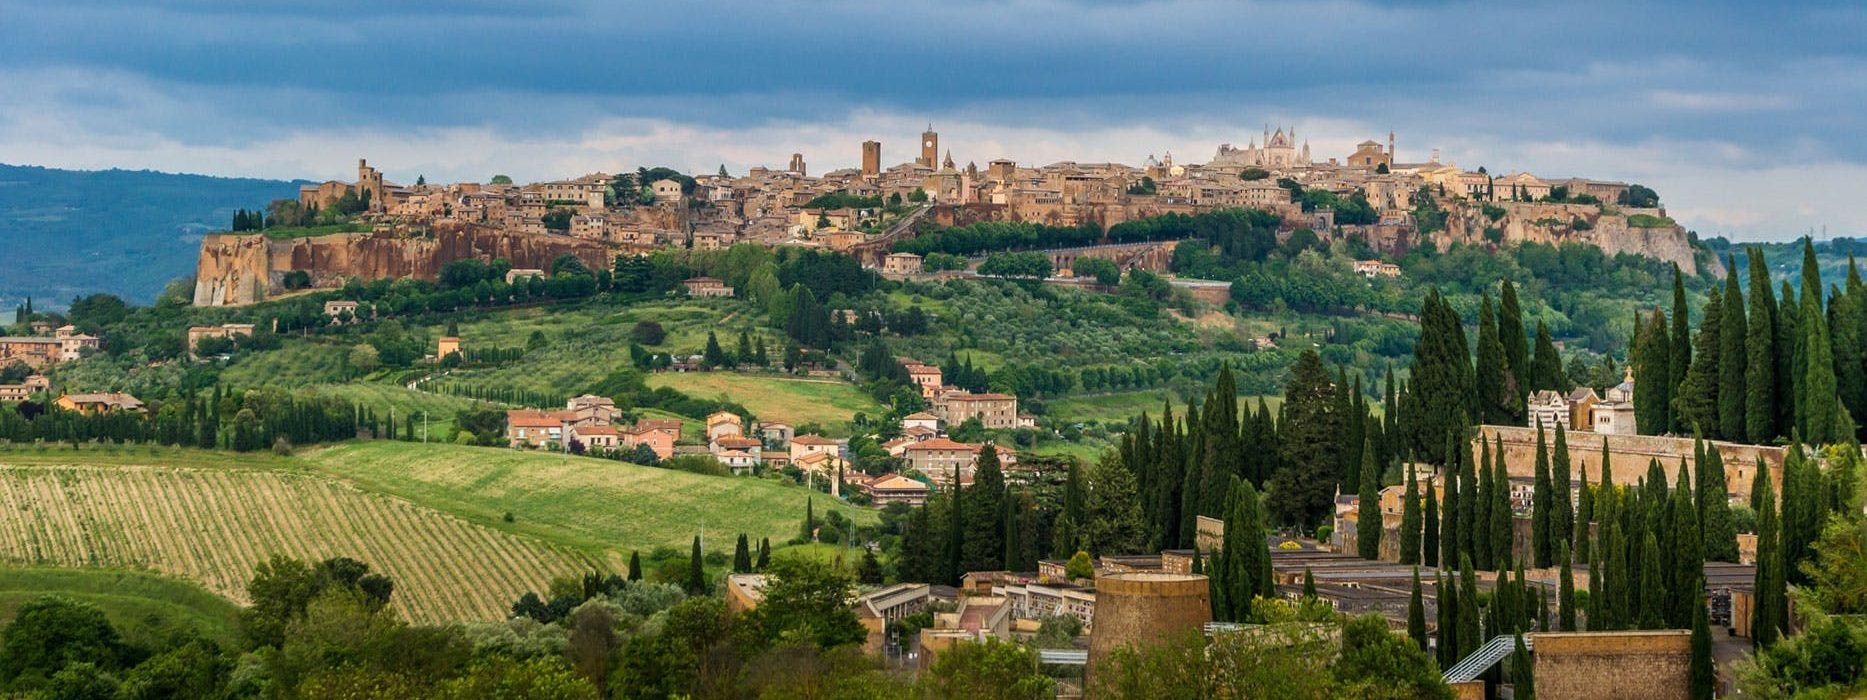 private-transfer-florence-to-rome-with-stop-in-orvieto-or-vv_94022_J2reOHW